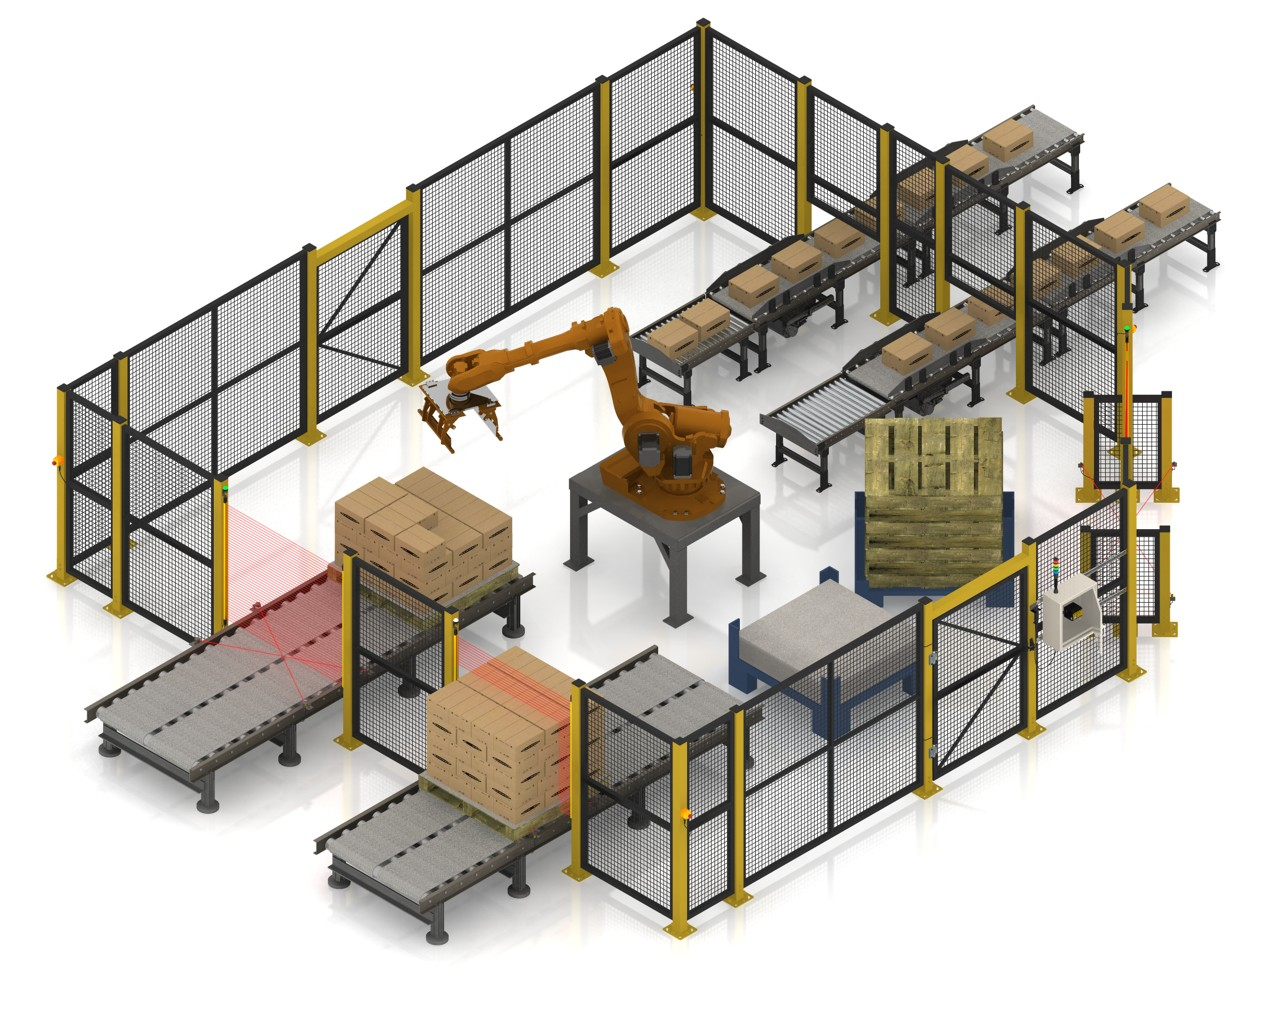 robot palletizing Robotworx sells new and reconditioned kuka palletizing robots at affordable prices.